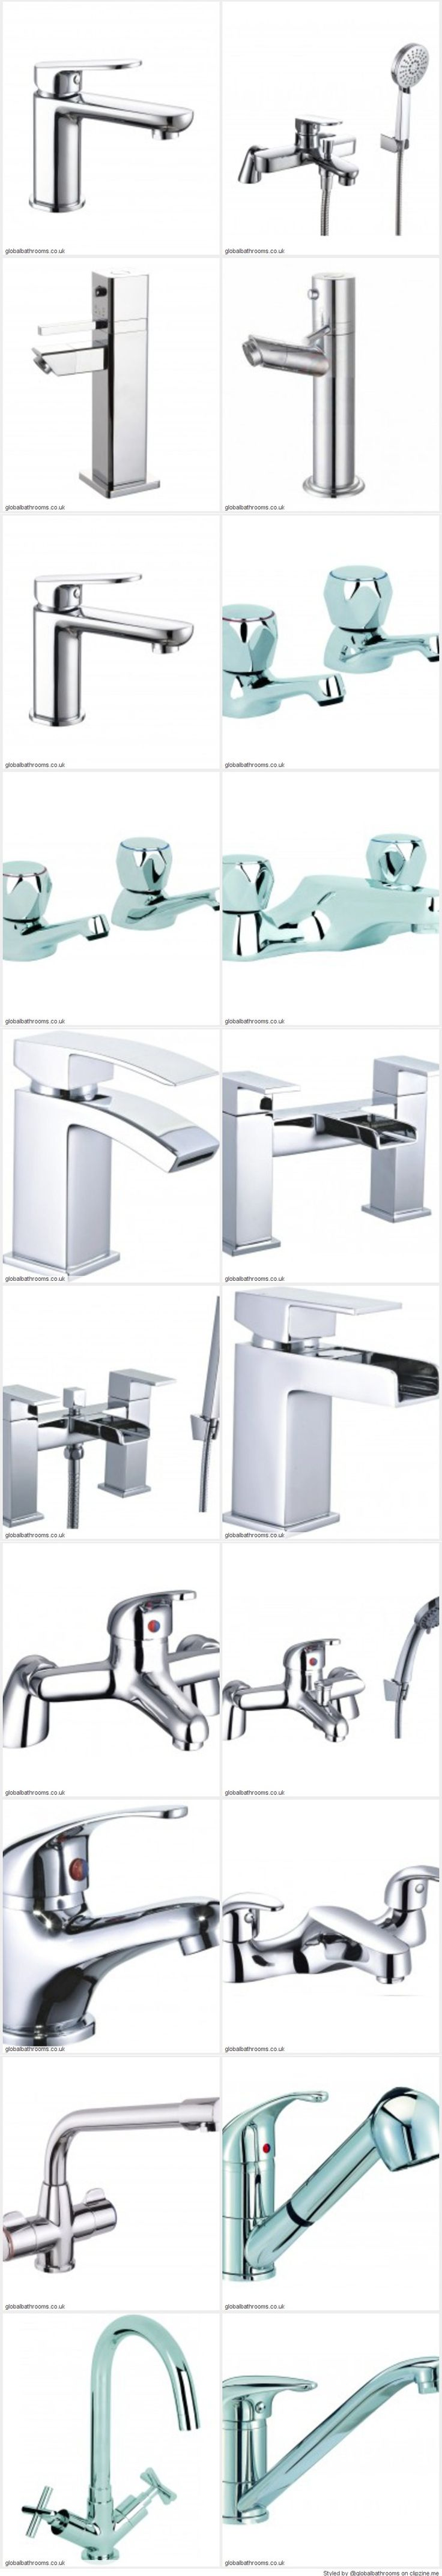 Bathroom Taps UK: Contemporary & Traditional Bathroom Taps